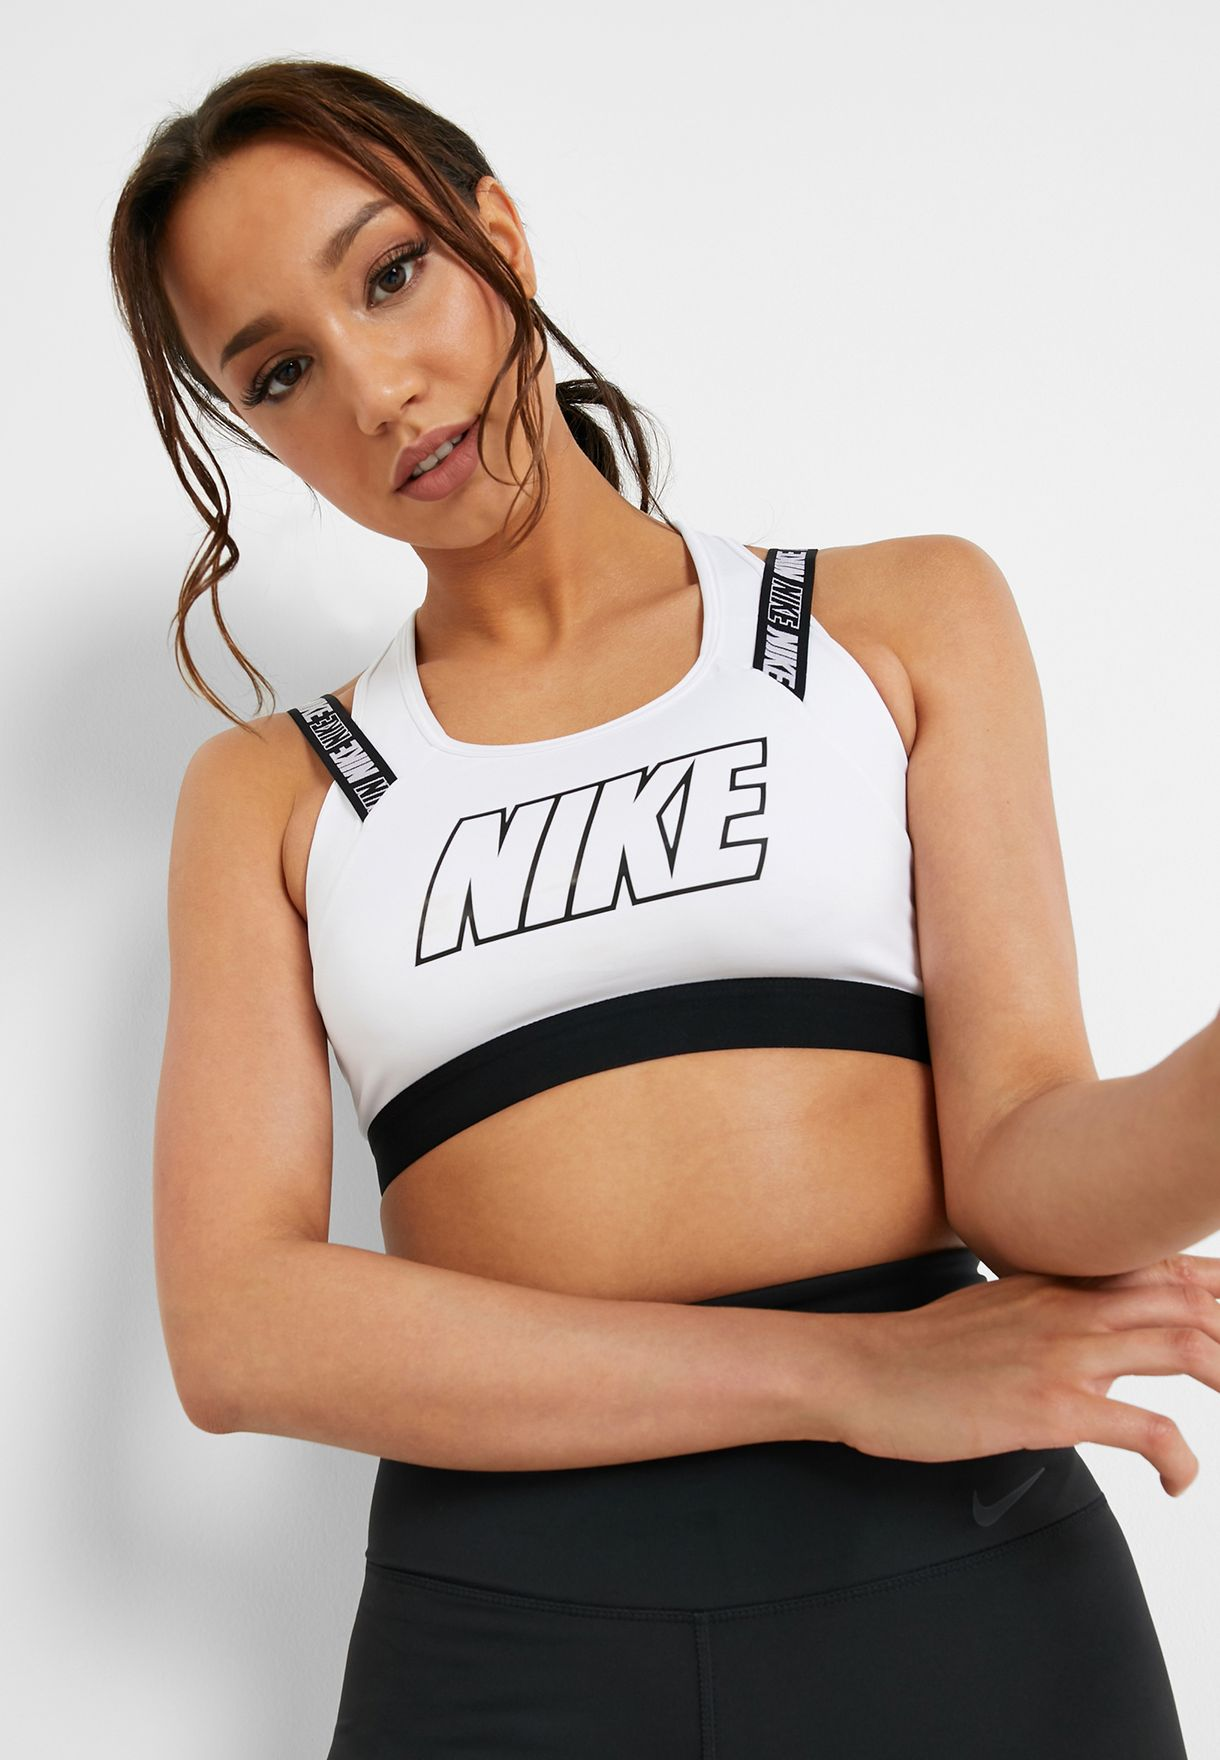 79a6c214a239 Shop Nike white Victory Compression Bra AQ0148-100 for Women in Saudi -  72704AT41KYP